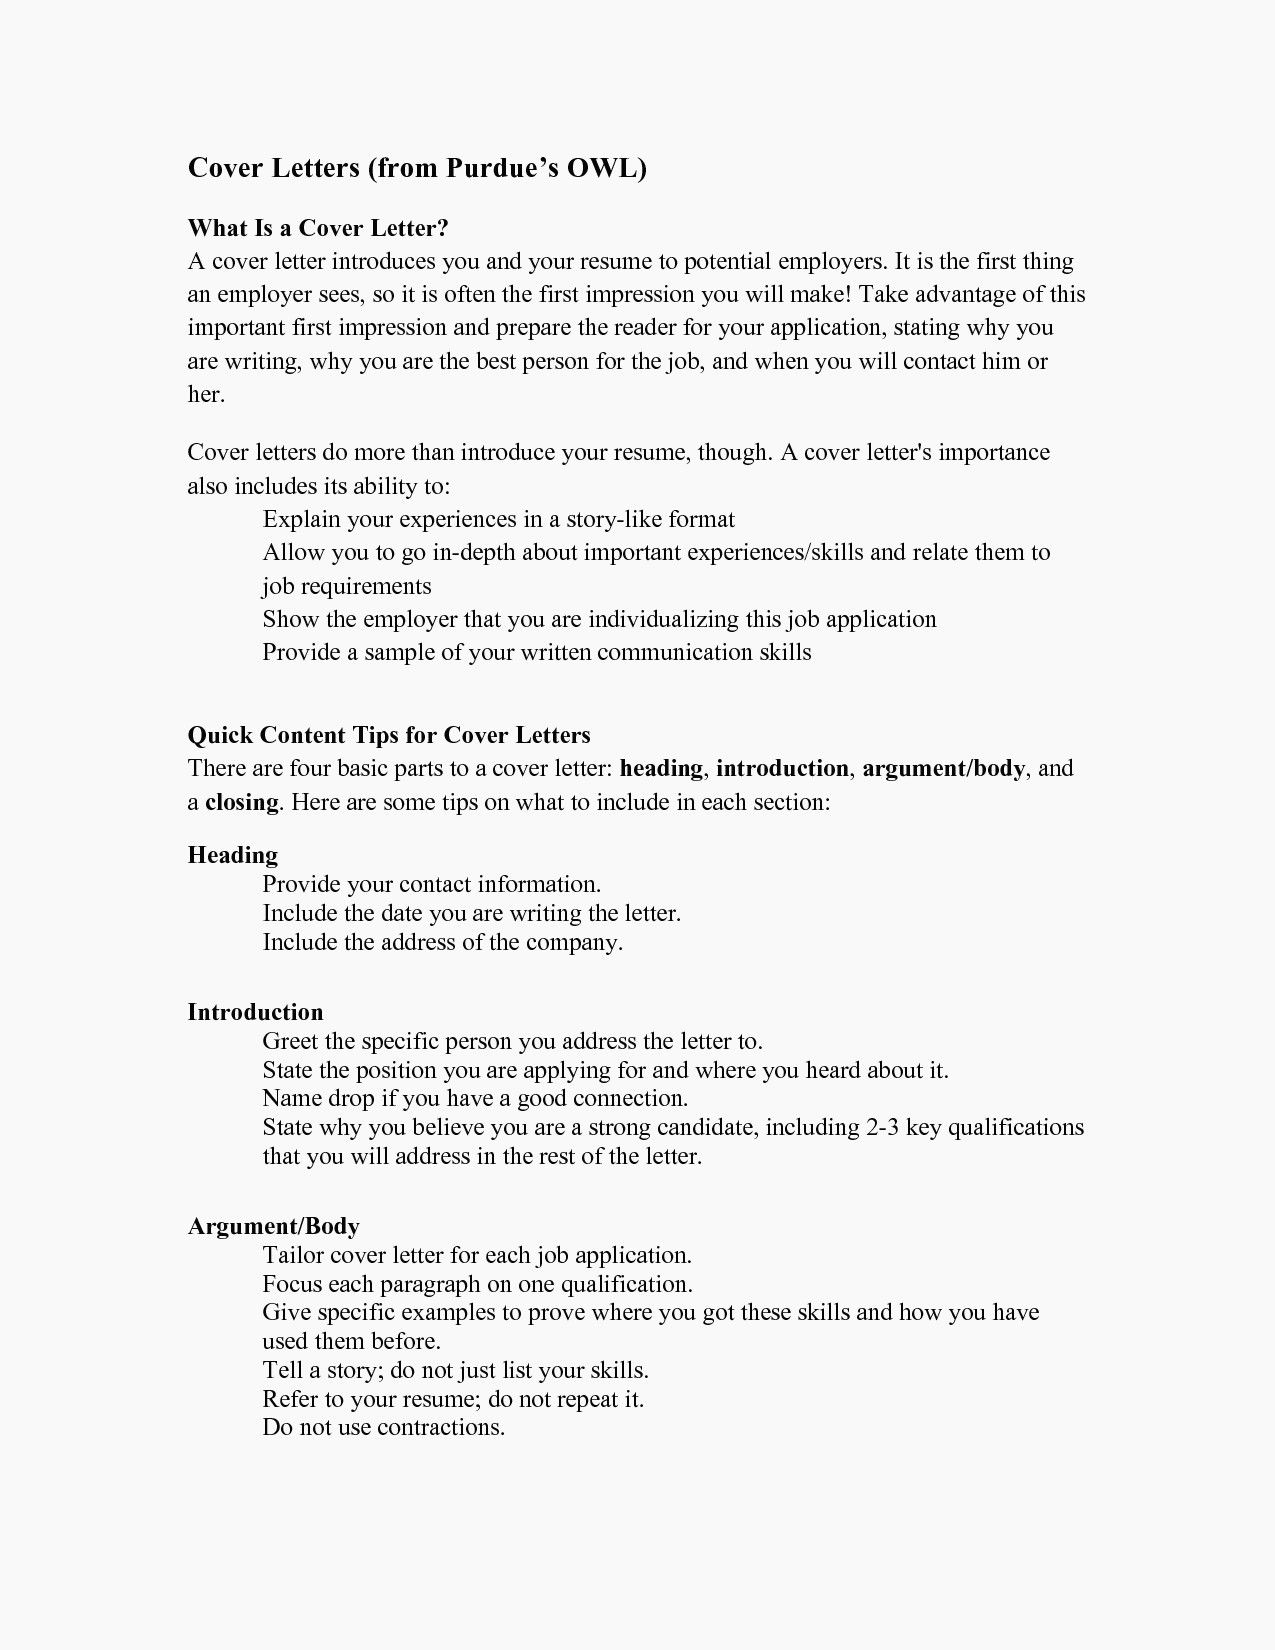 Cover Letter Guidelines Purdue Large Photos Most Effective